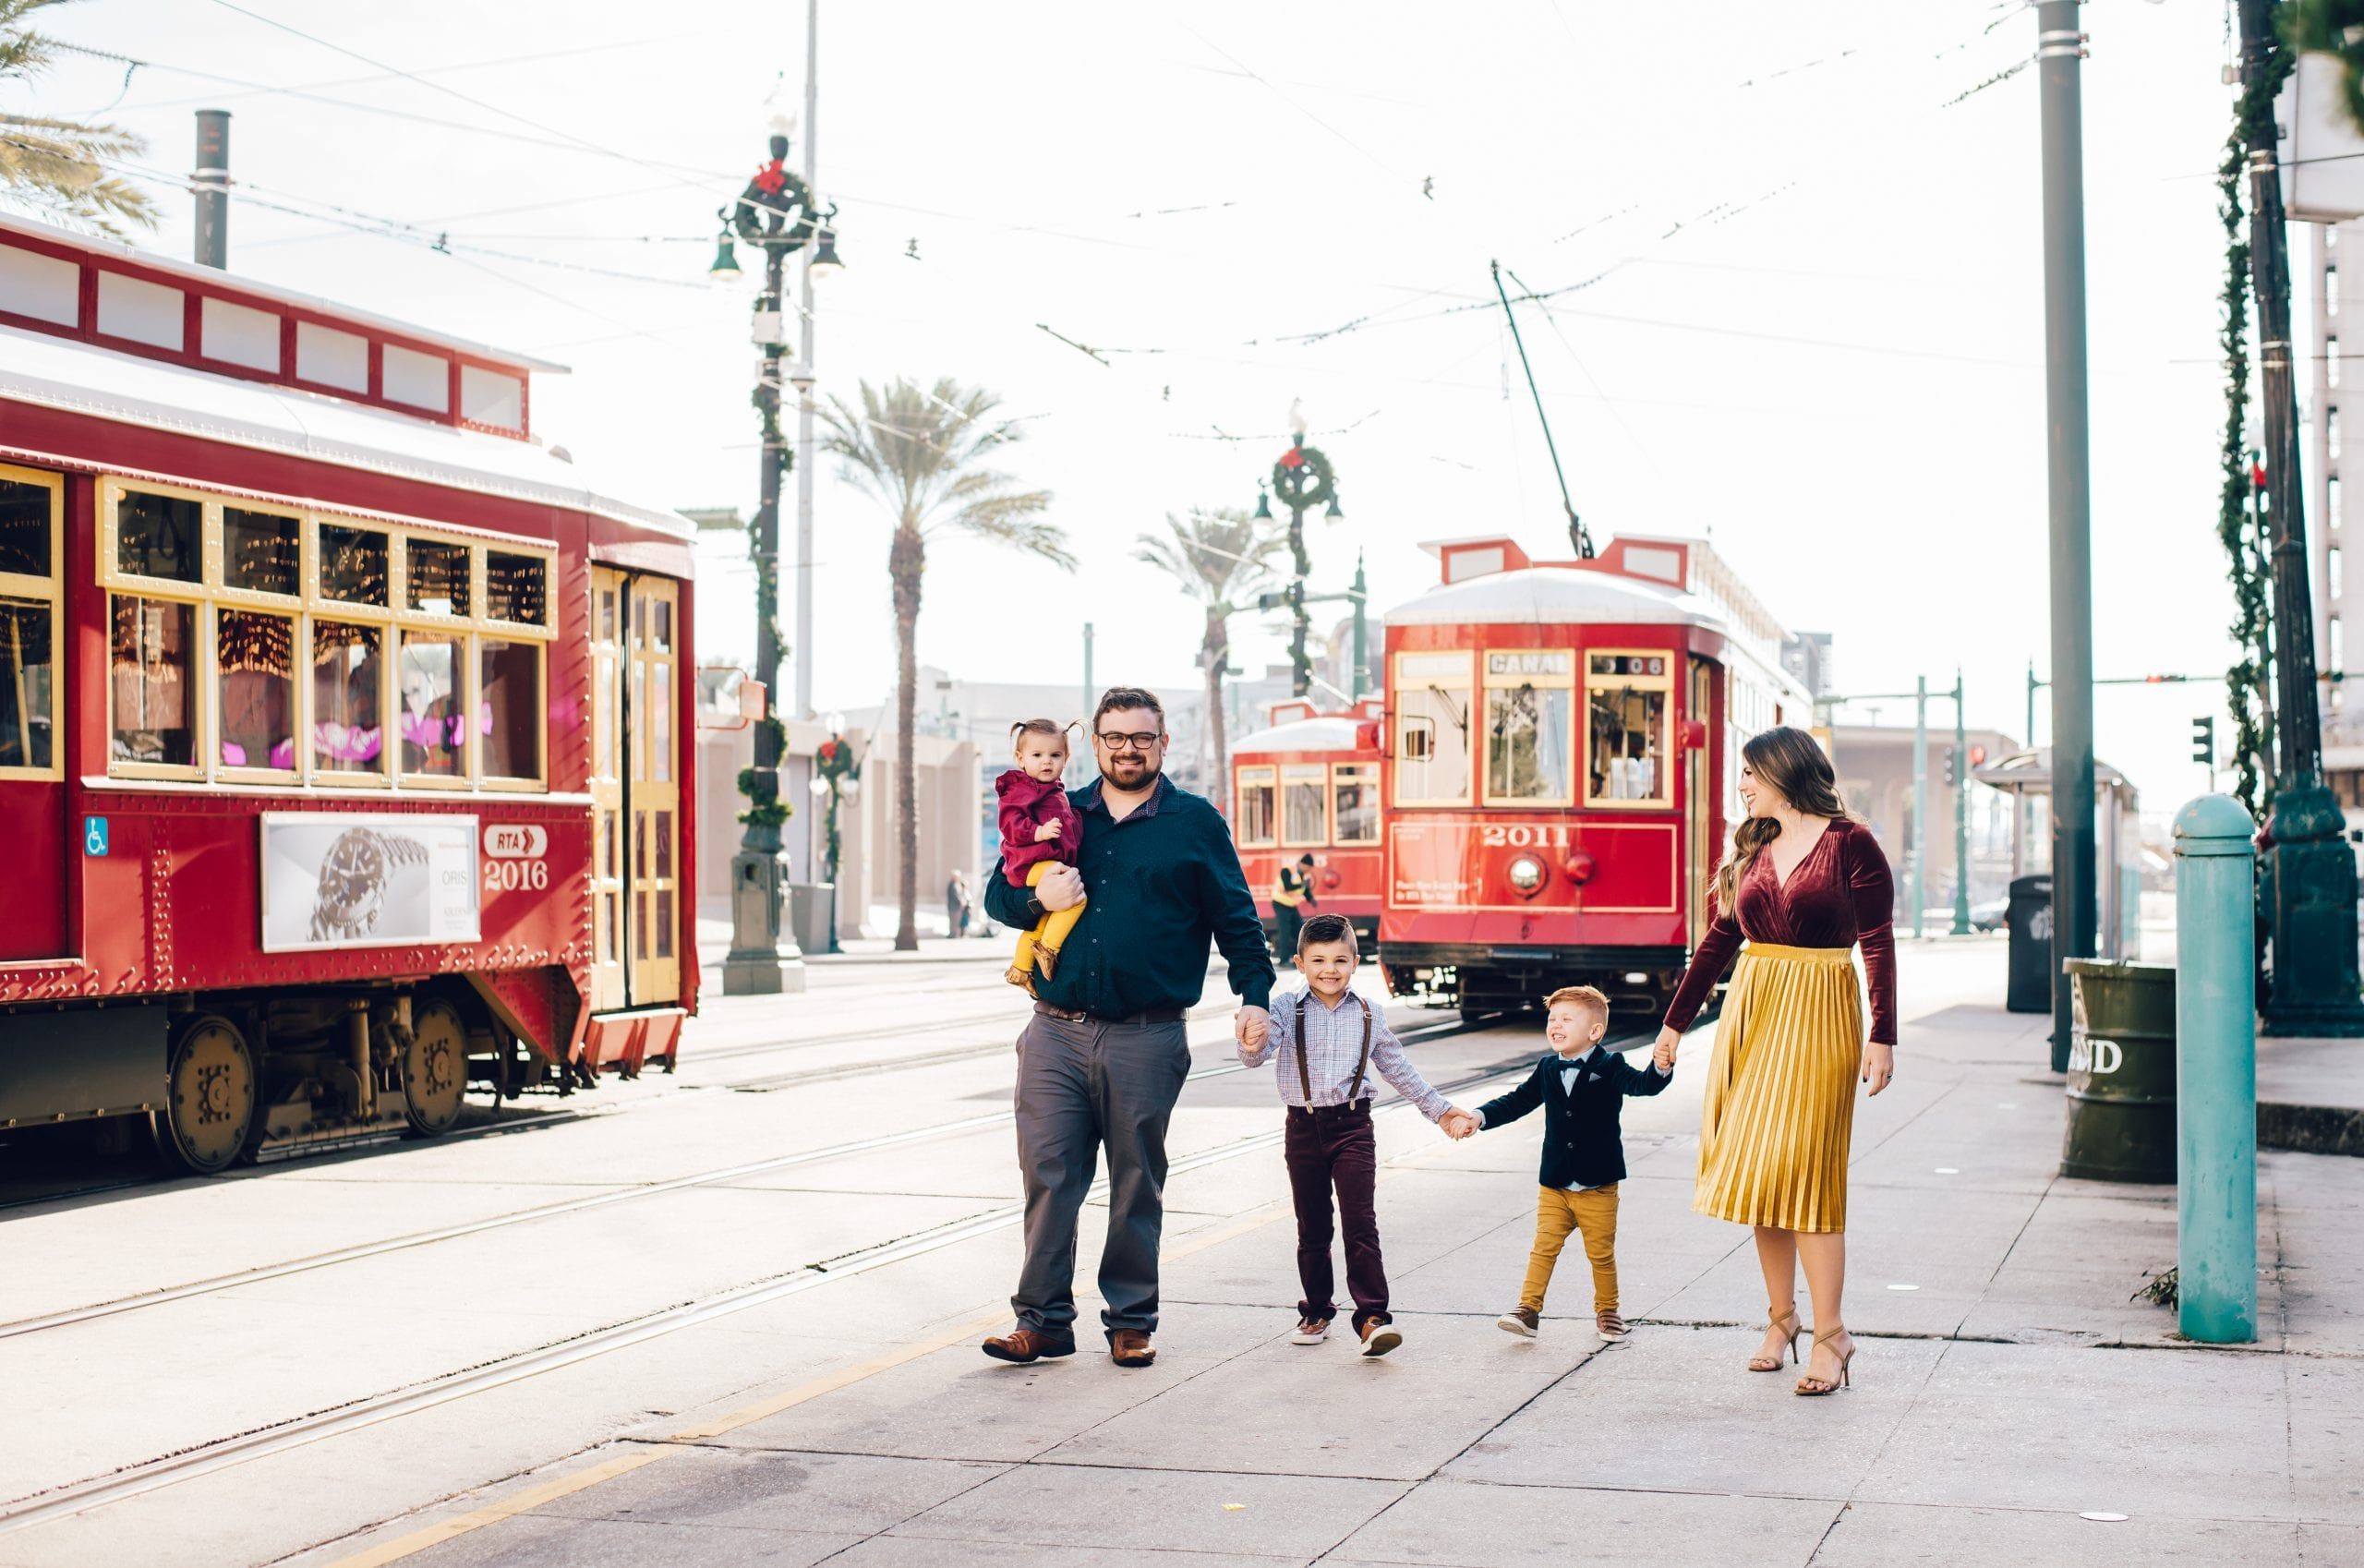 streetcar photos in New Orleans